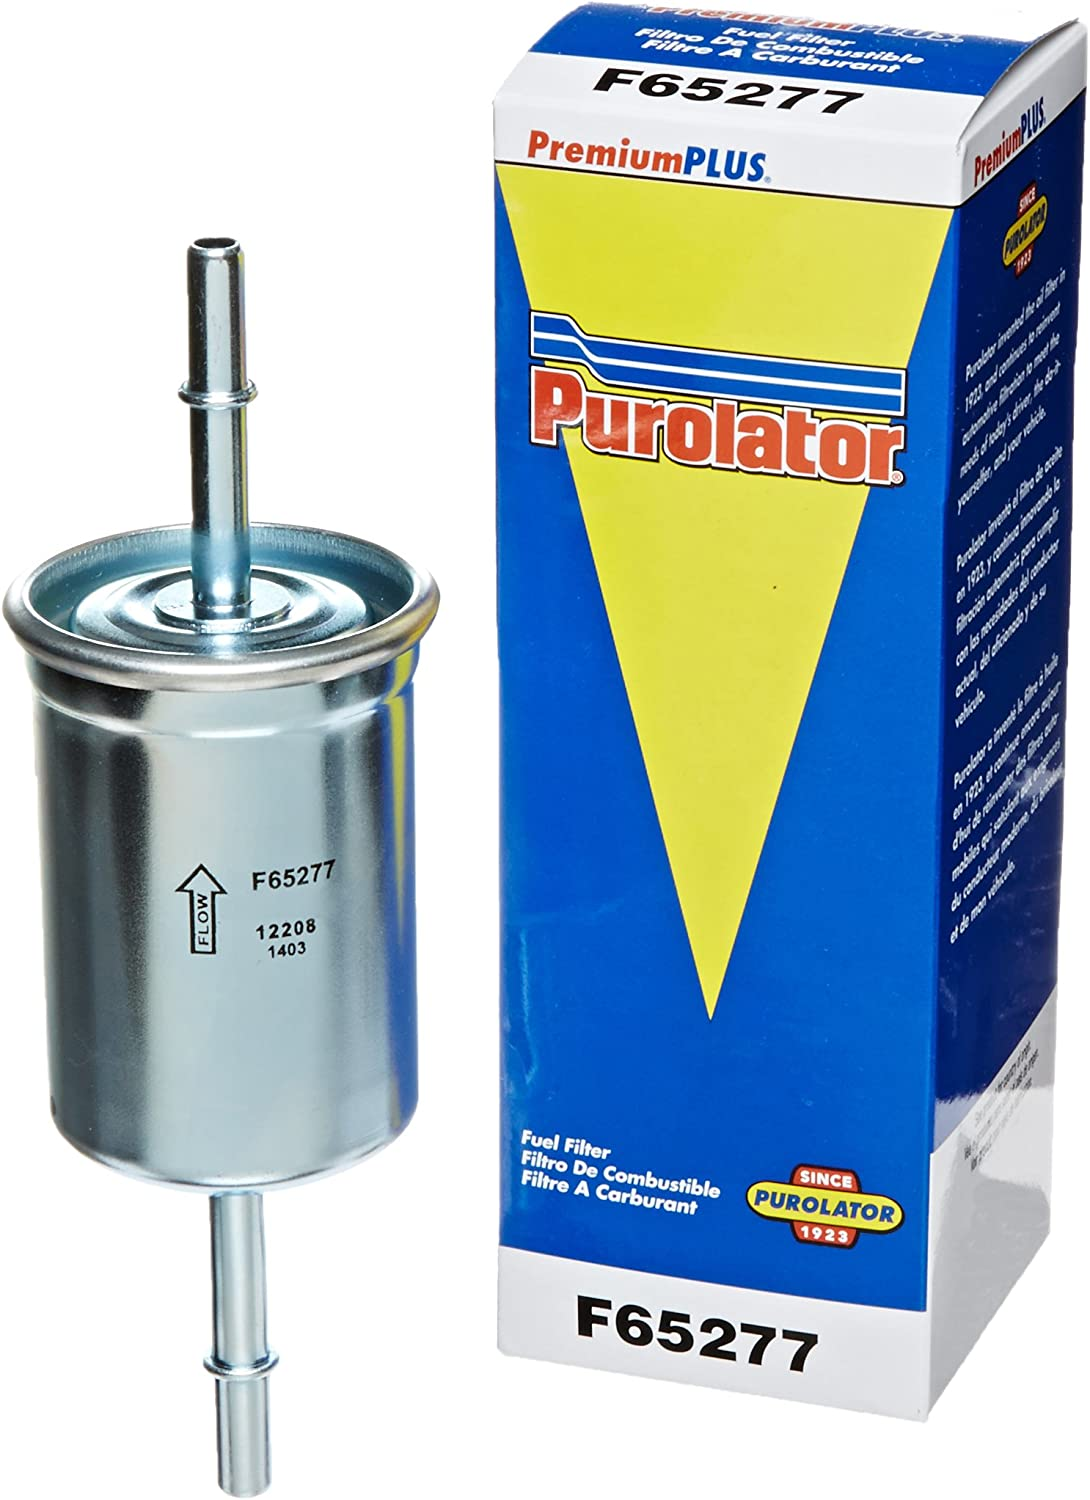 FUEL FILTER F65277 FOR FORD LINCOLN MERCURY OVER 500 VEHICLES CASE OF 6